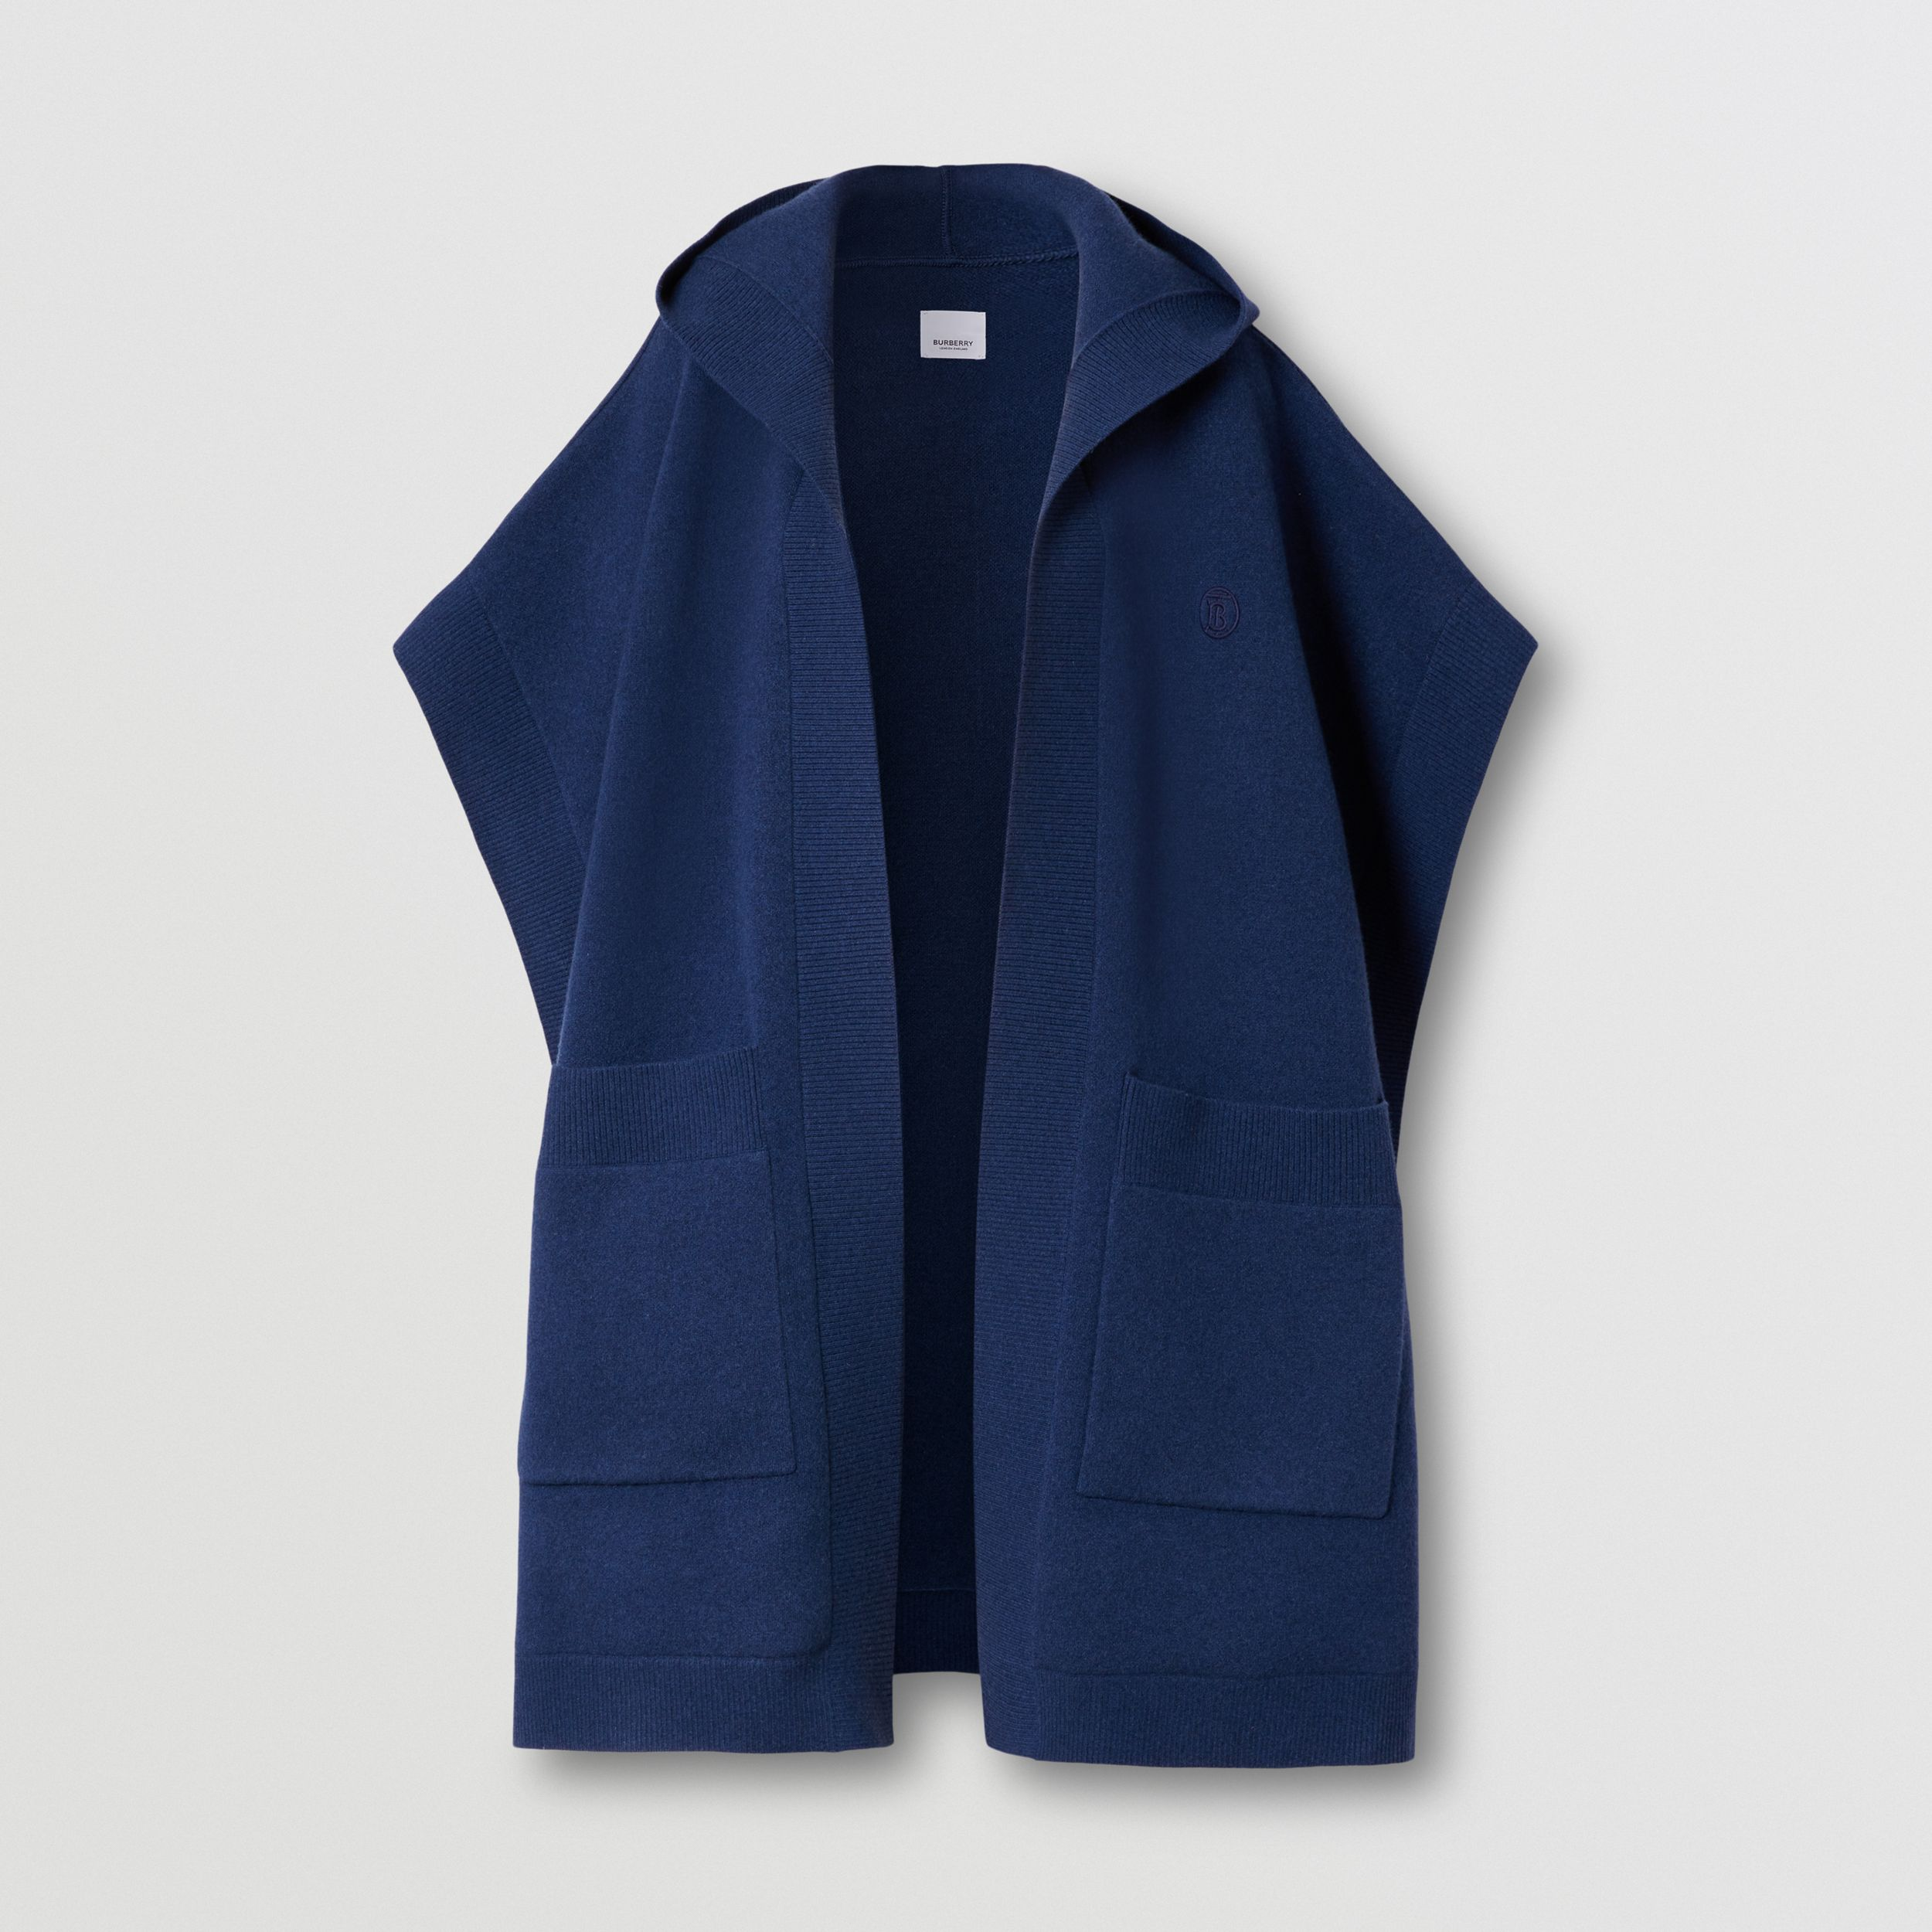 Monogram Motif Cashmere Blend Hooded Cape in Ink Blue - Women | Burberry United States - 4